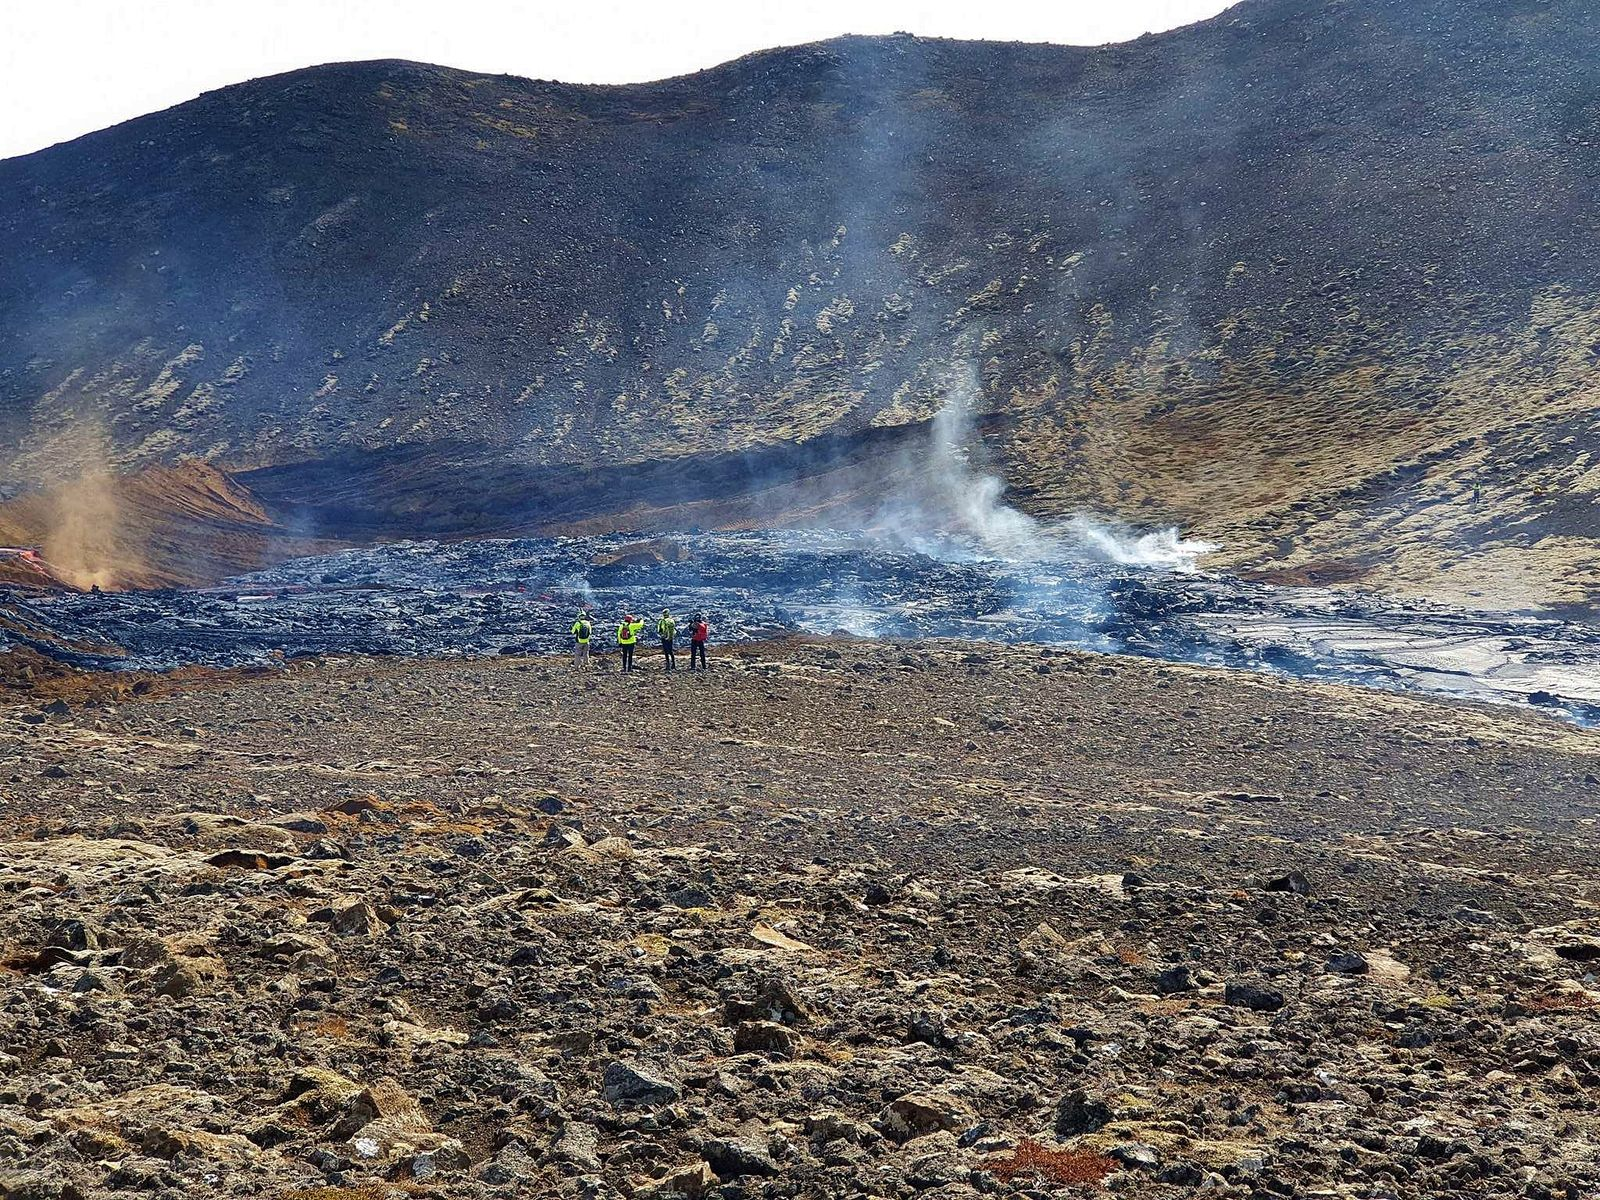 Fagradalsfjall eruption - 22.05.2021 - The lava flow has passed the dam and is heading towards the Nátthaga valley - RUV photo